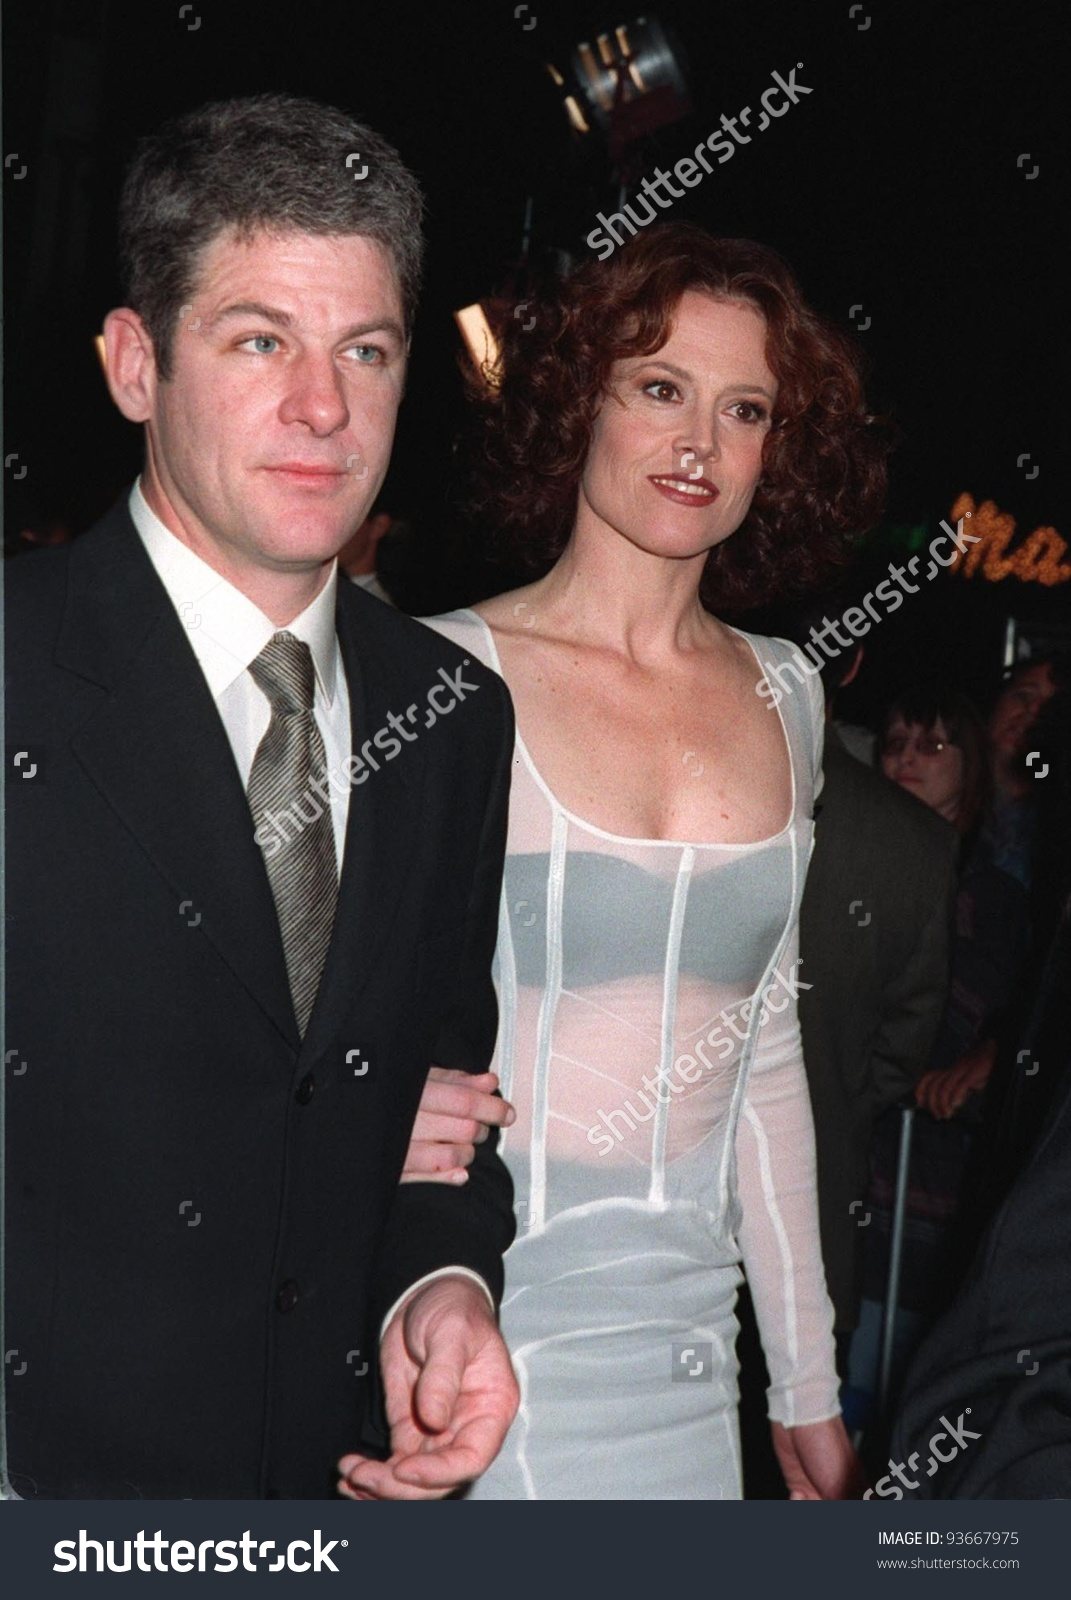 20nov97 Actress Sigourney Weaver Husband Jim Stock Photo 93667975.